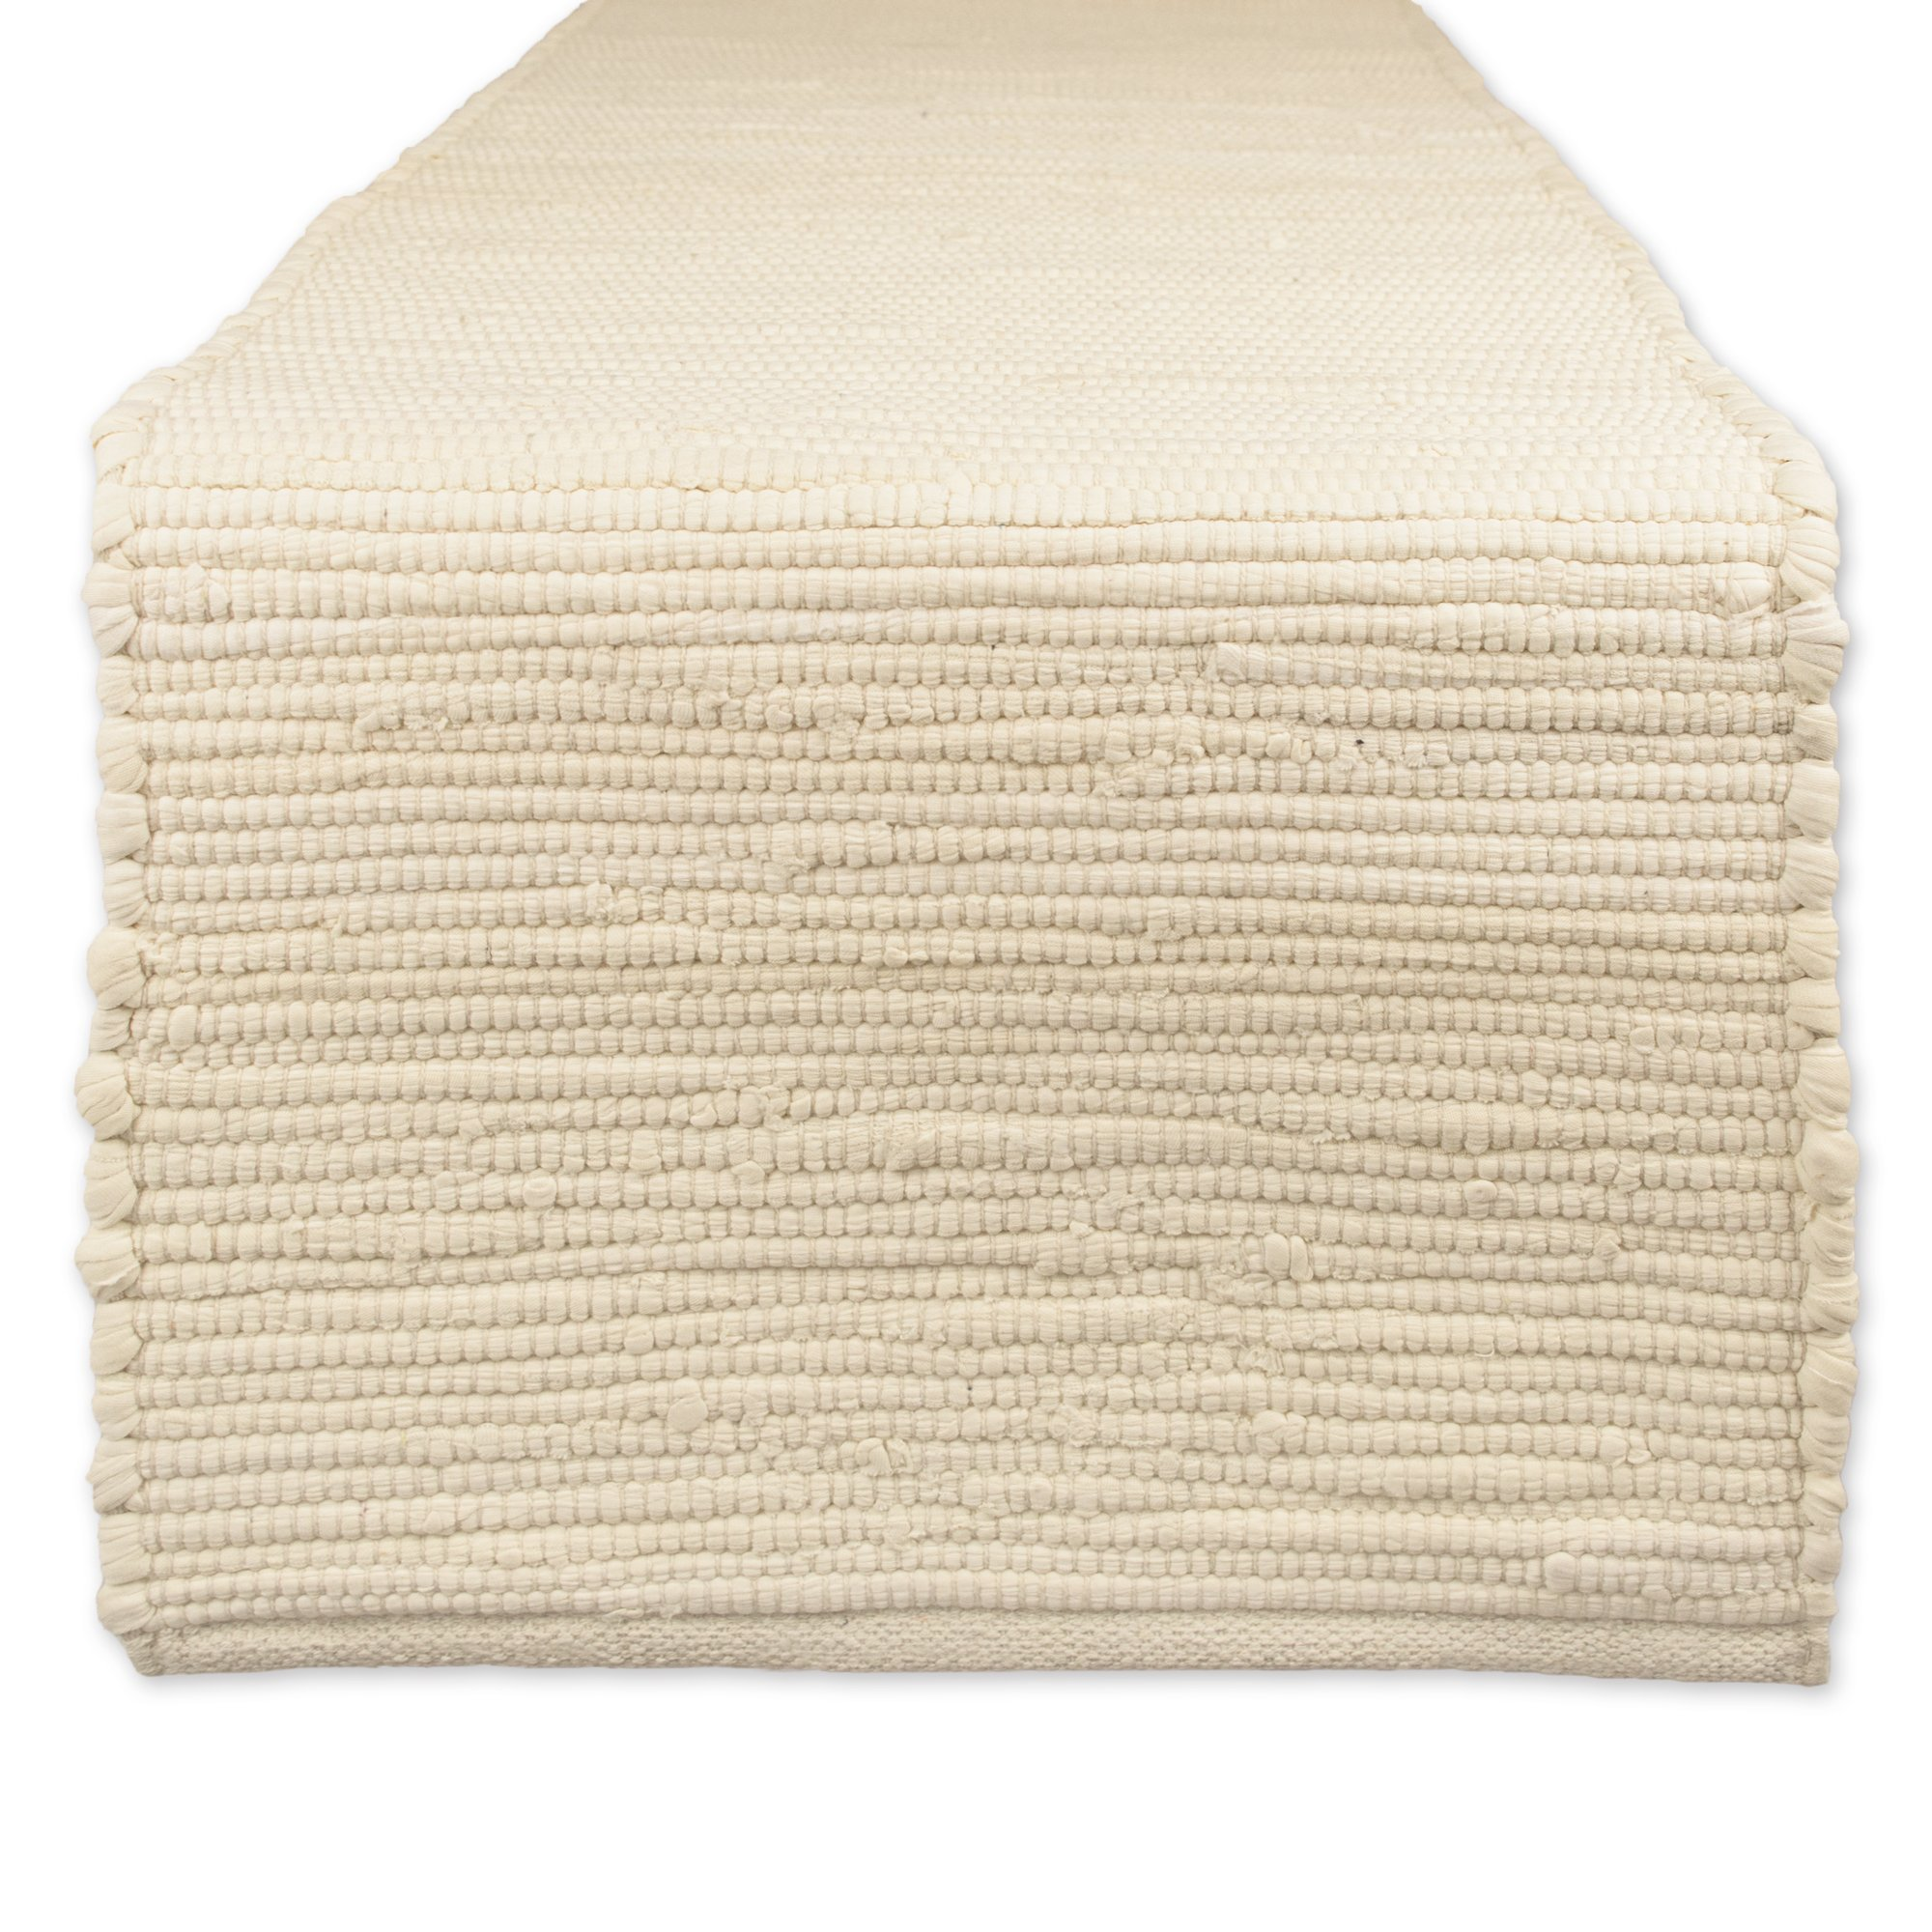 DII Cotton Everyday Machine Washable Chindi Rag Table Runner, 14 X 72'', Natural